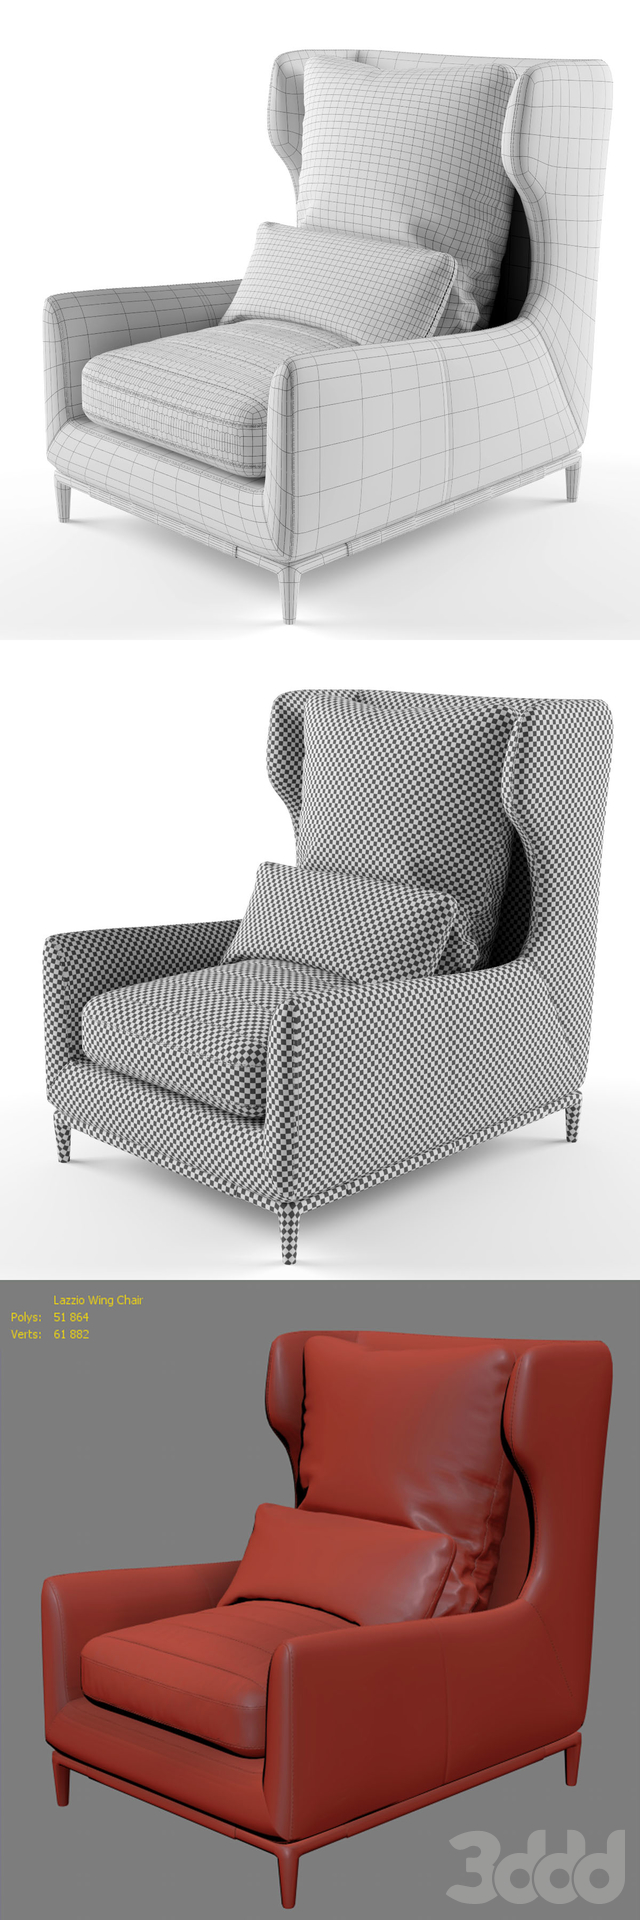 Lazzio Wing Chair